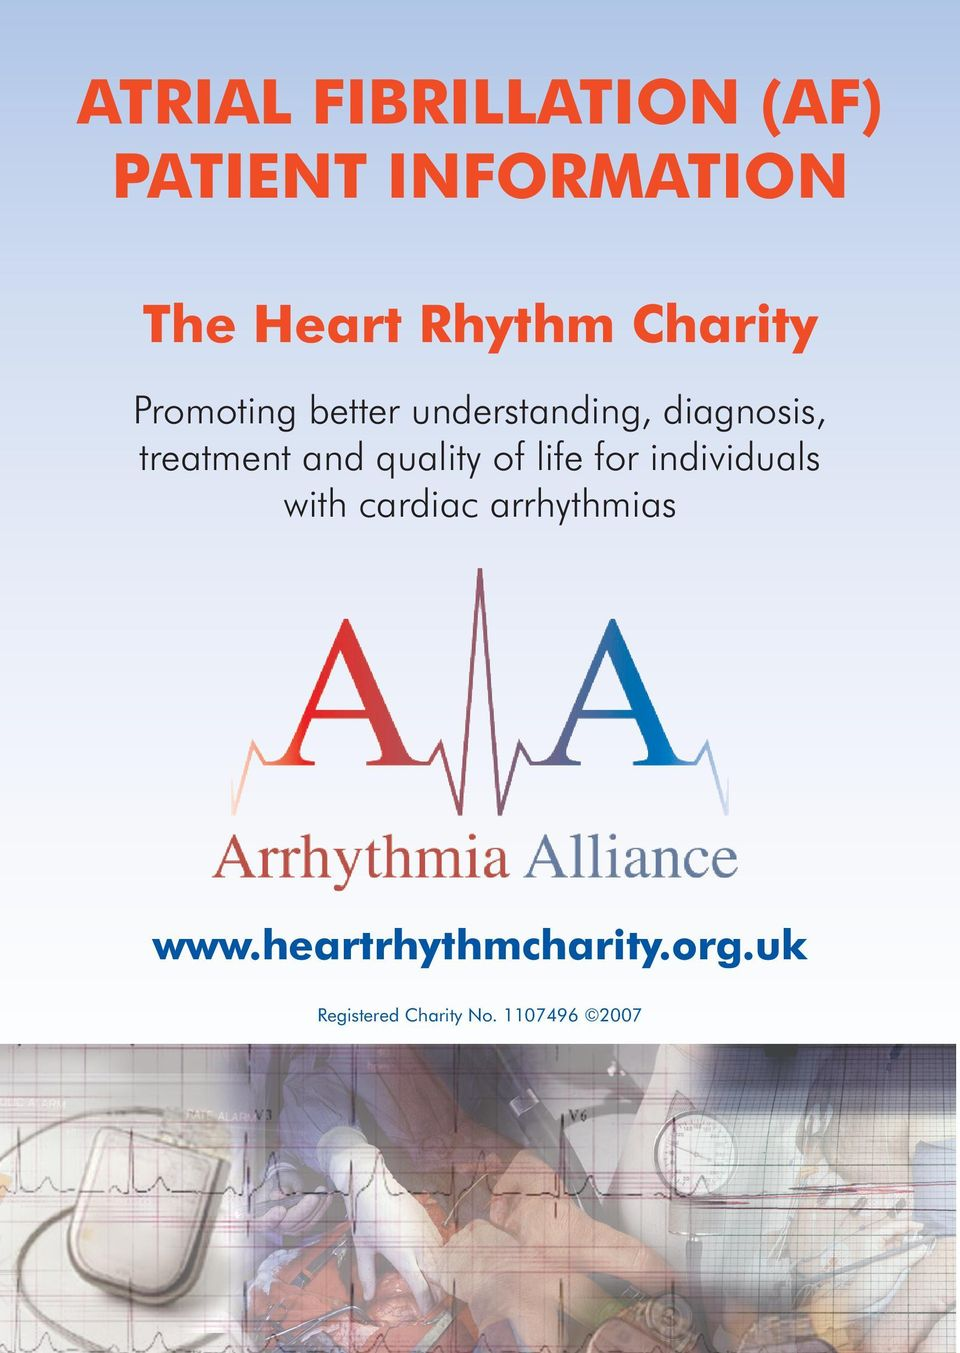 and quality of life for individuals with cardiac arrhythmias